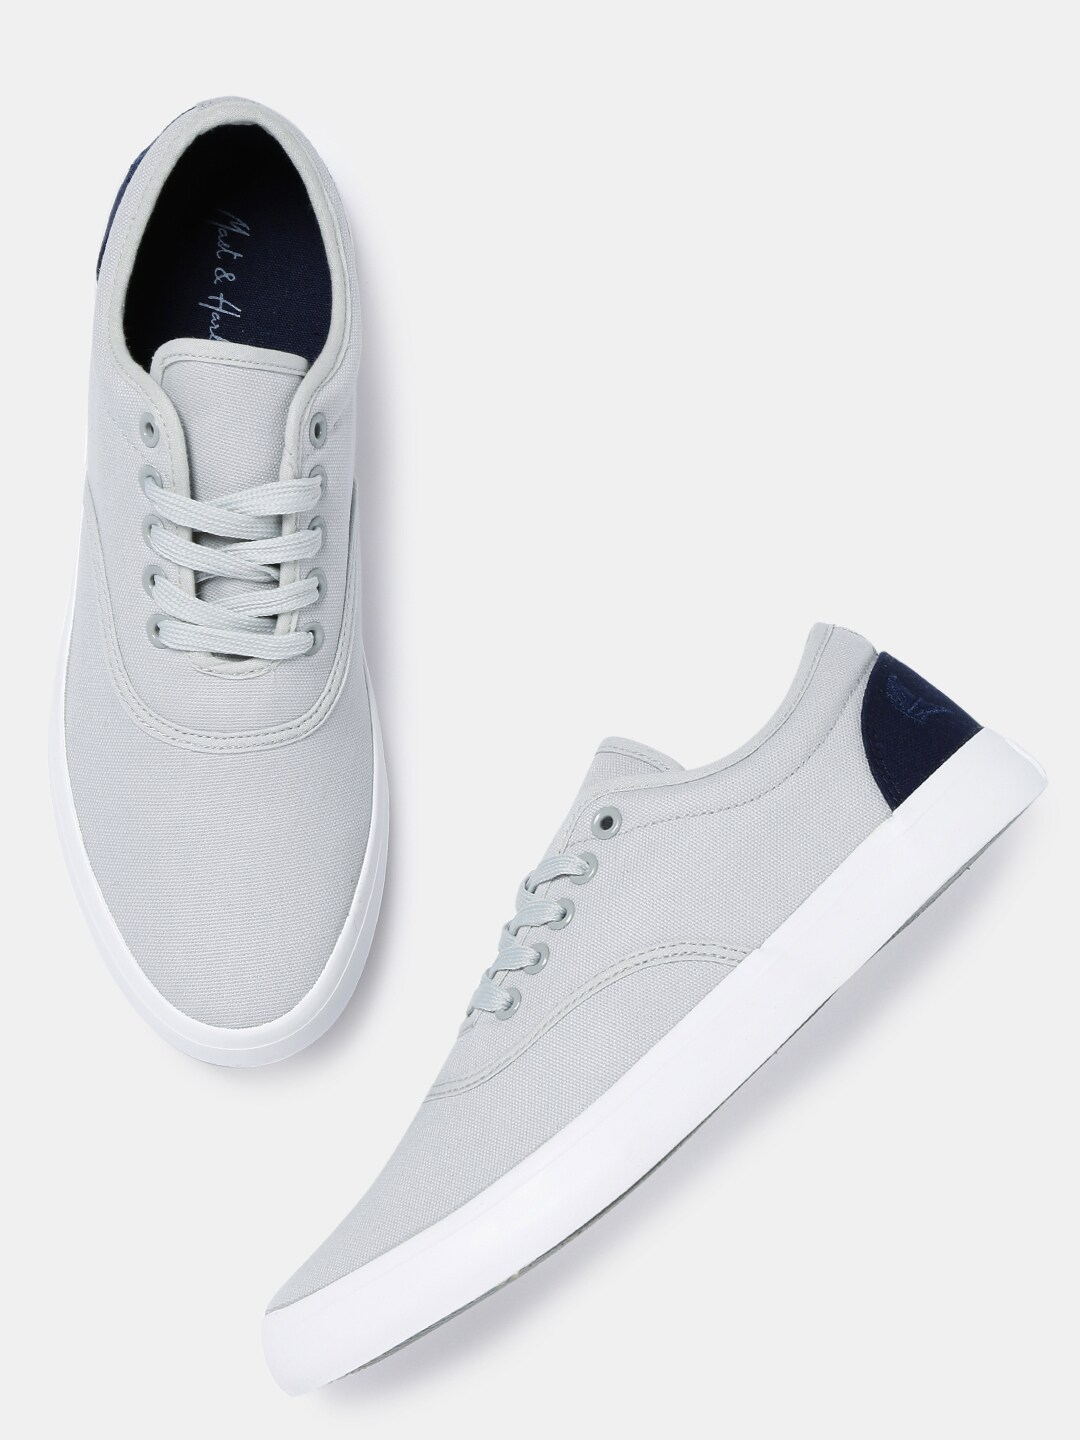 6f1107a69ae Casual Shoes For Men - Buy Casual   Flat Shoes For Men